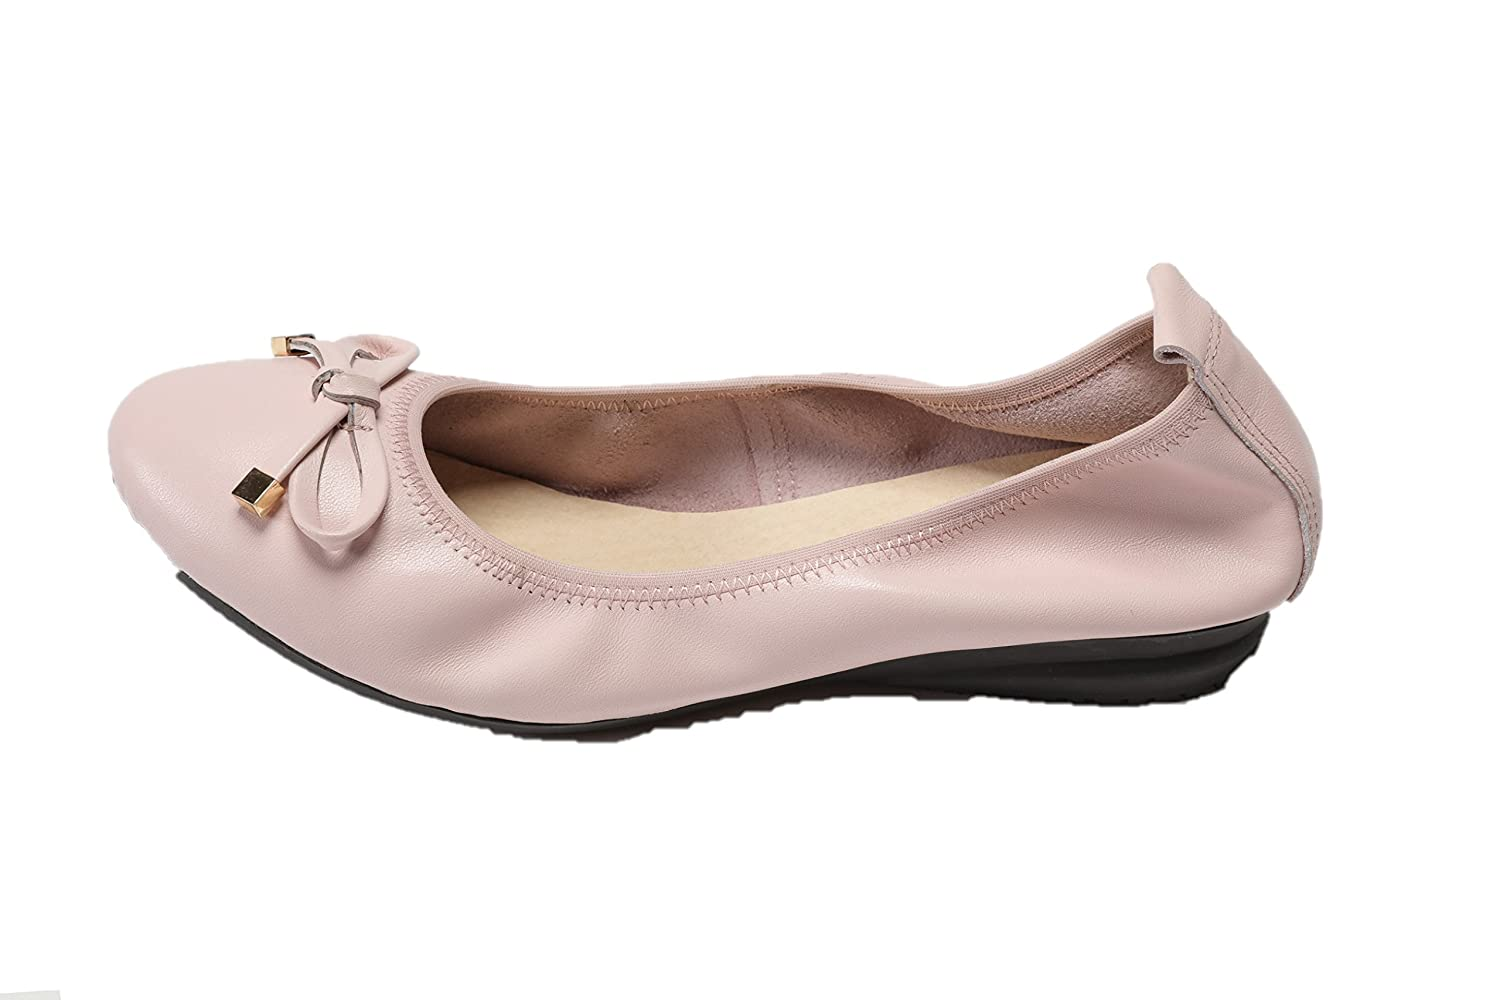 Ballerina Flat Bow Style Leather Pumps Shoe for Woman B07CZMBY1F 7 B(M) US|Pale Pink